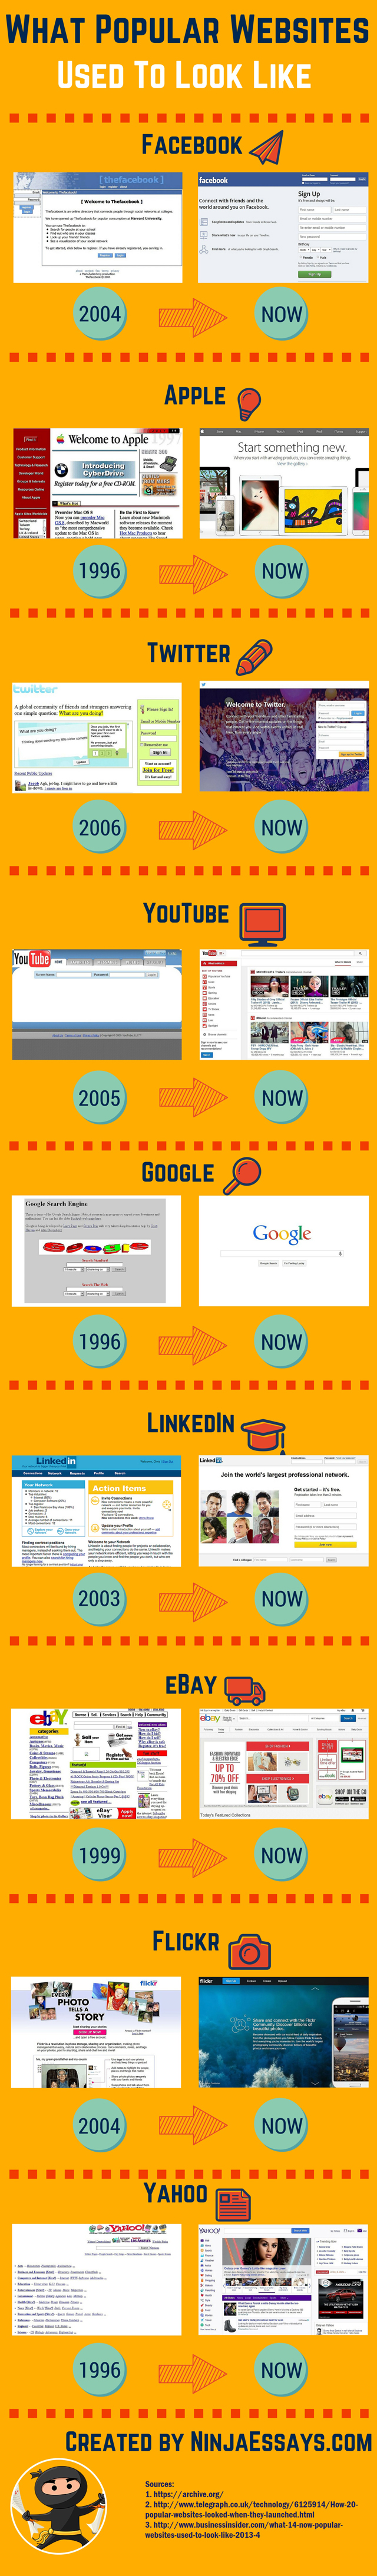 What popular web sites used to look like.